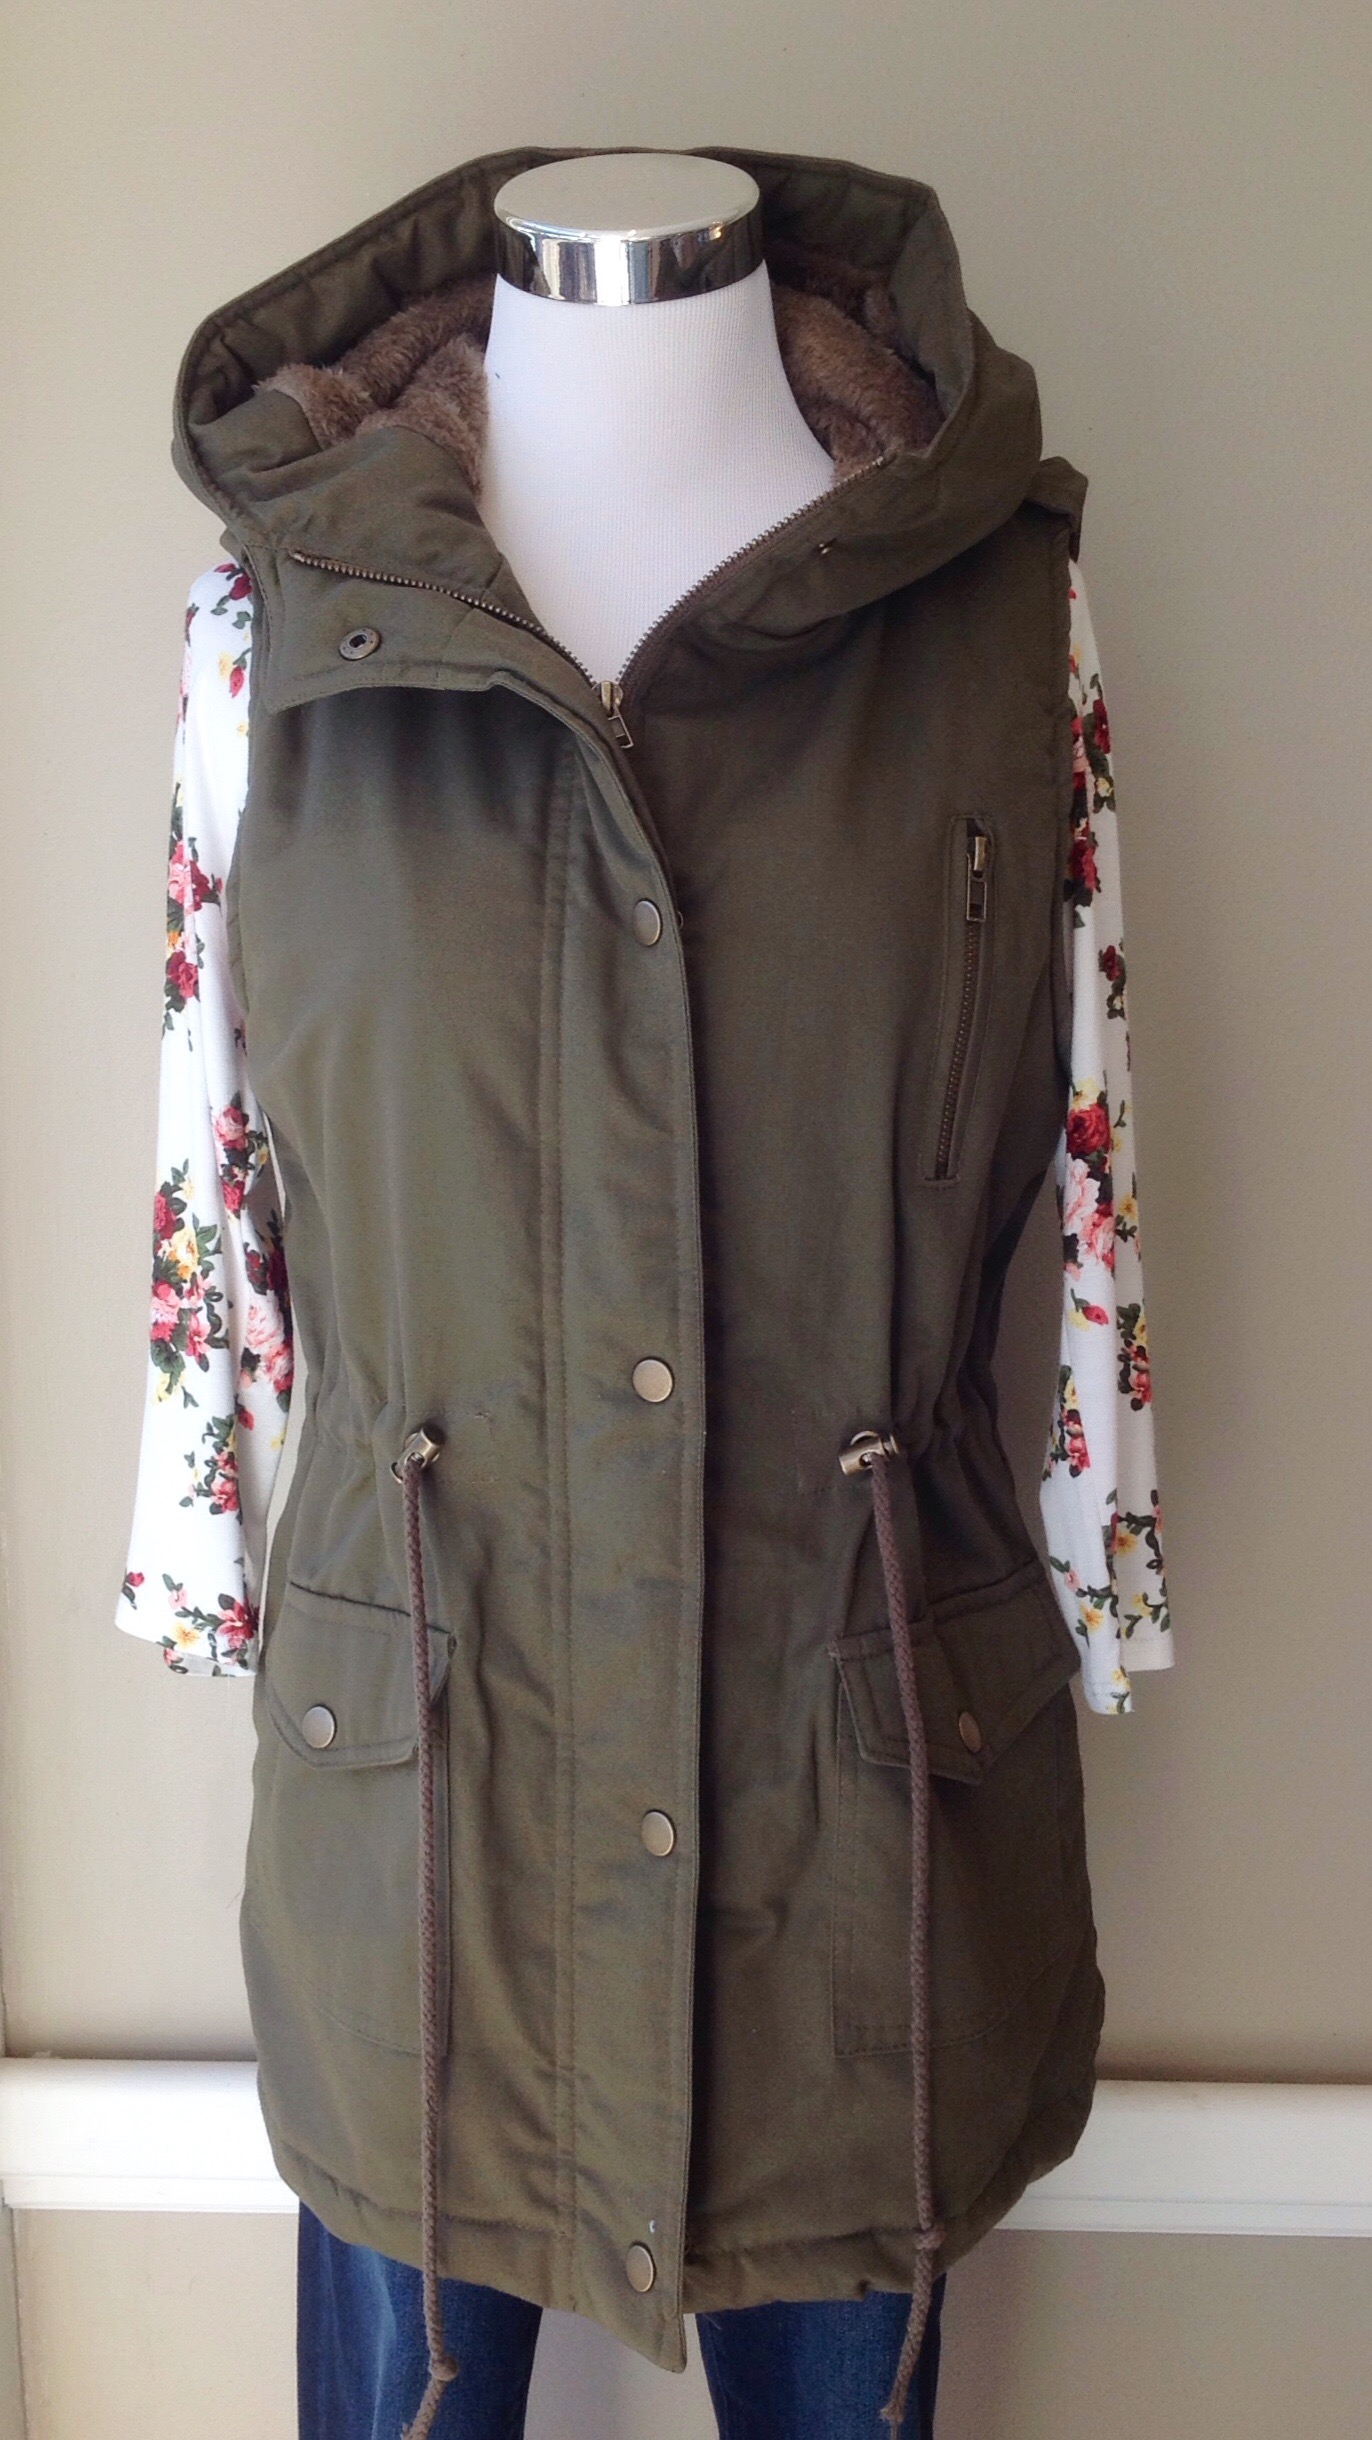 Olive hooded vest with faux fur lining and drawstring waist, $38